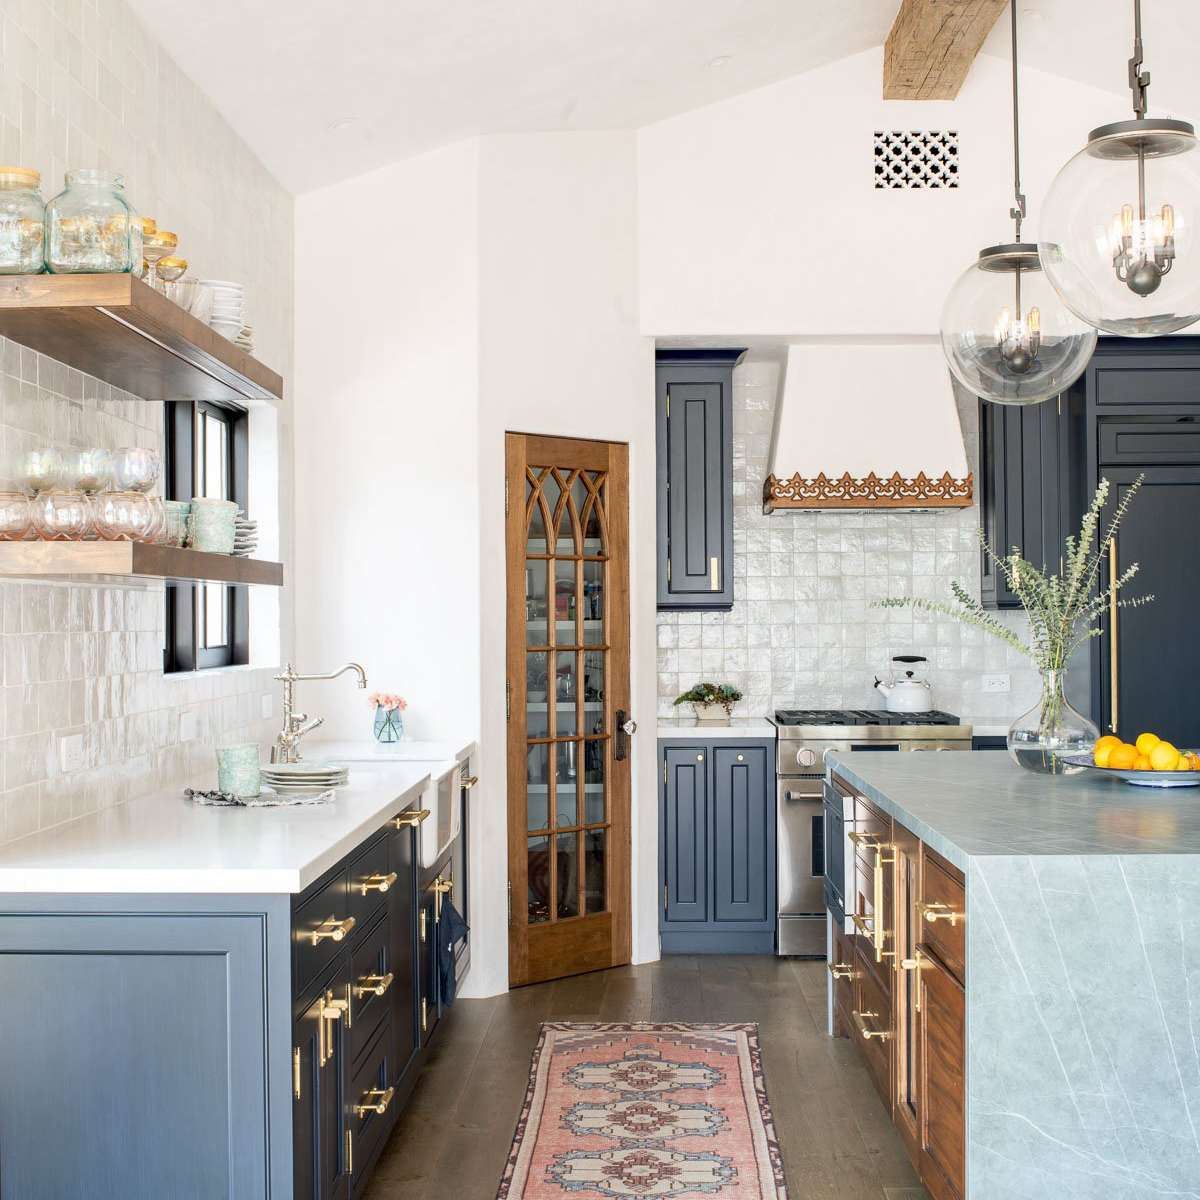 A kitchen with navy cabinets, marble countertops, and a pink rug